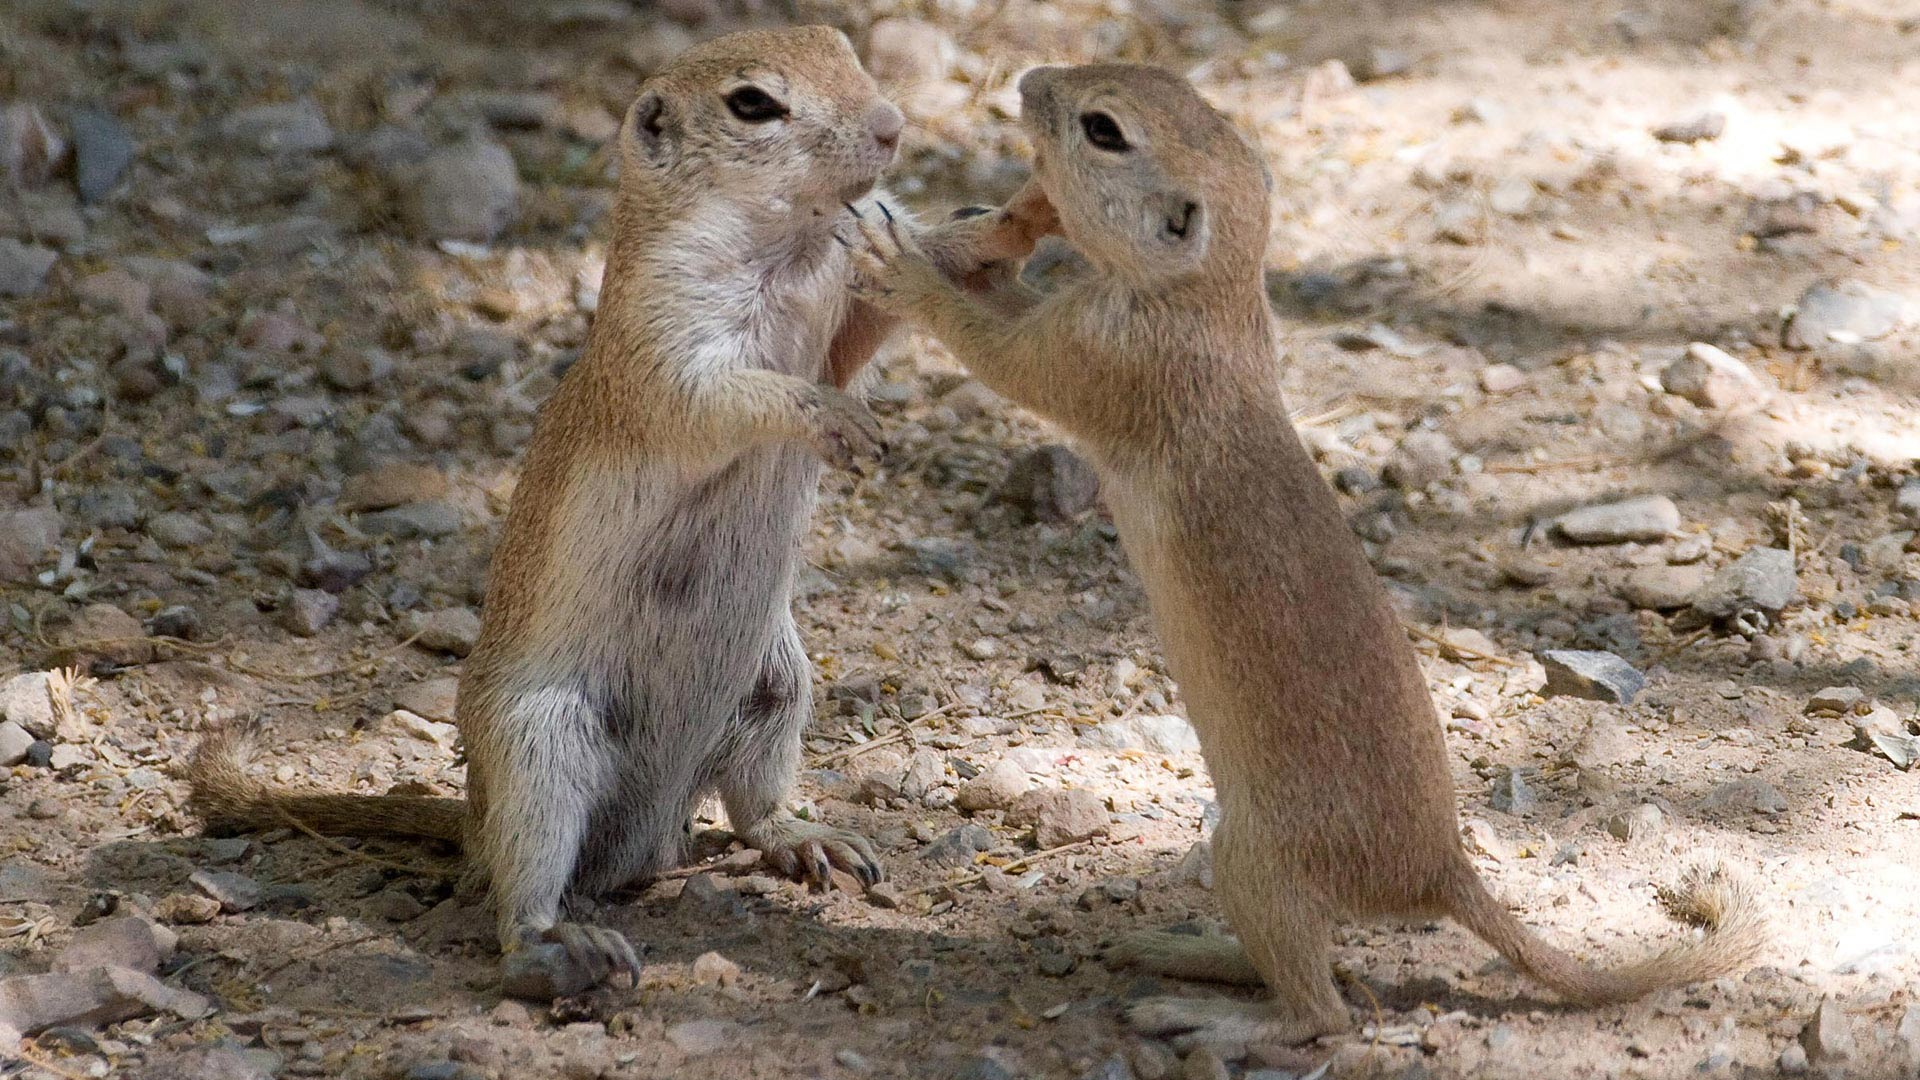 ground squirrels standing together